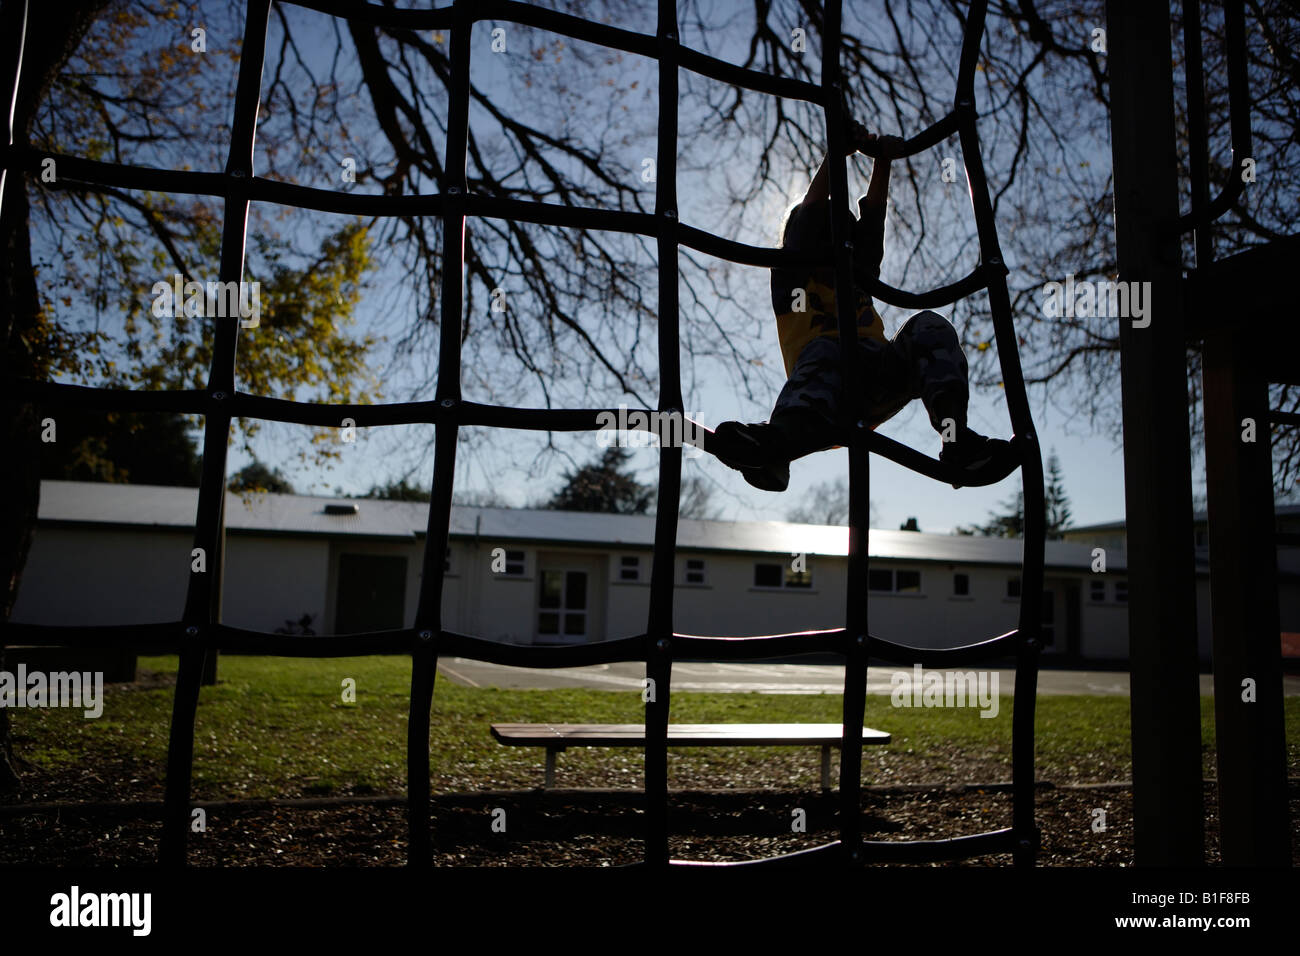 Six year old boy climbs on playground equipment New Zealand Stock Photo